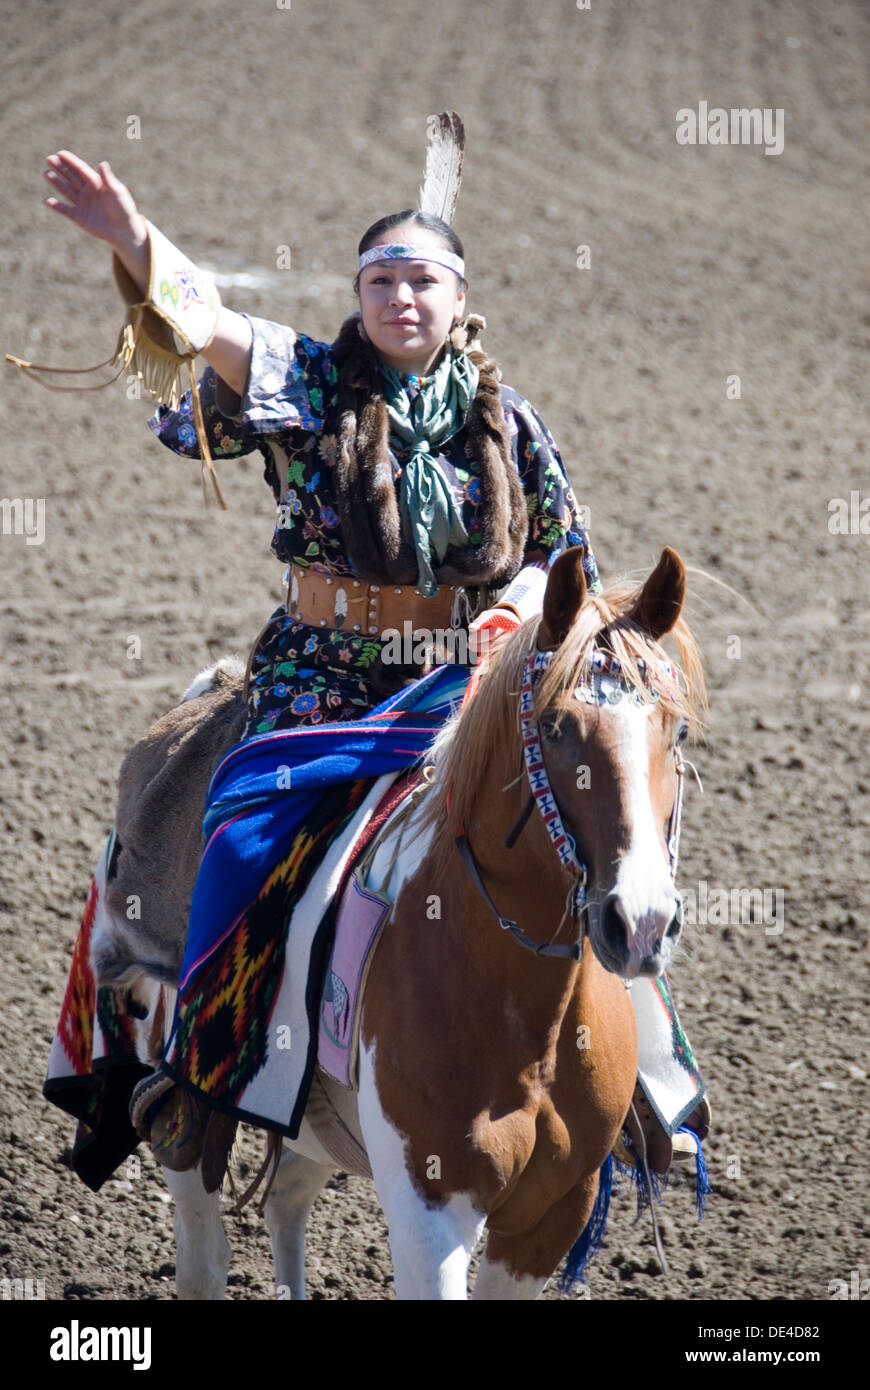 Indian Tribeswoman in traditional dress riding horseback saluting, Ellensburg Rodeo opening ceremony, 2012 WA USA - Stock Image